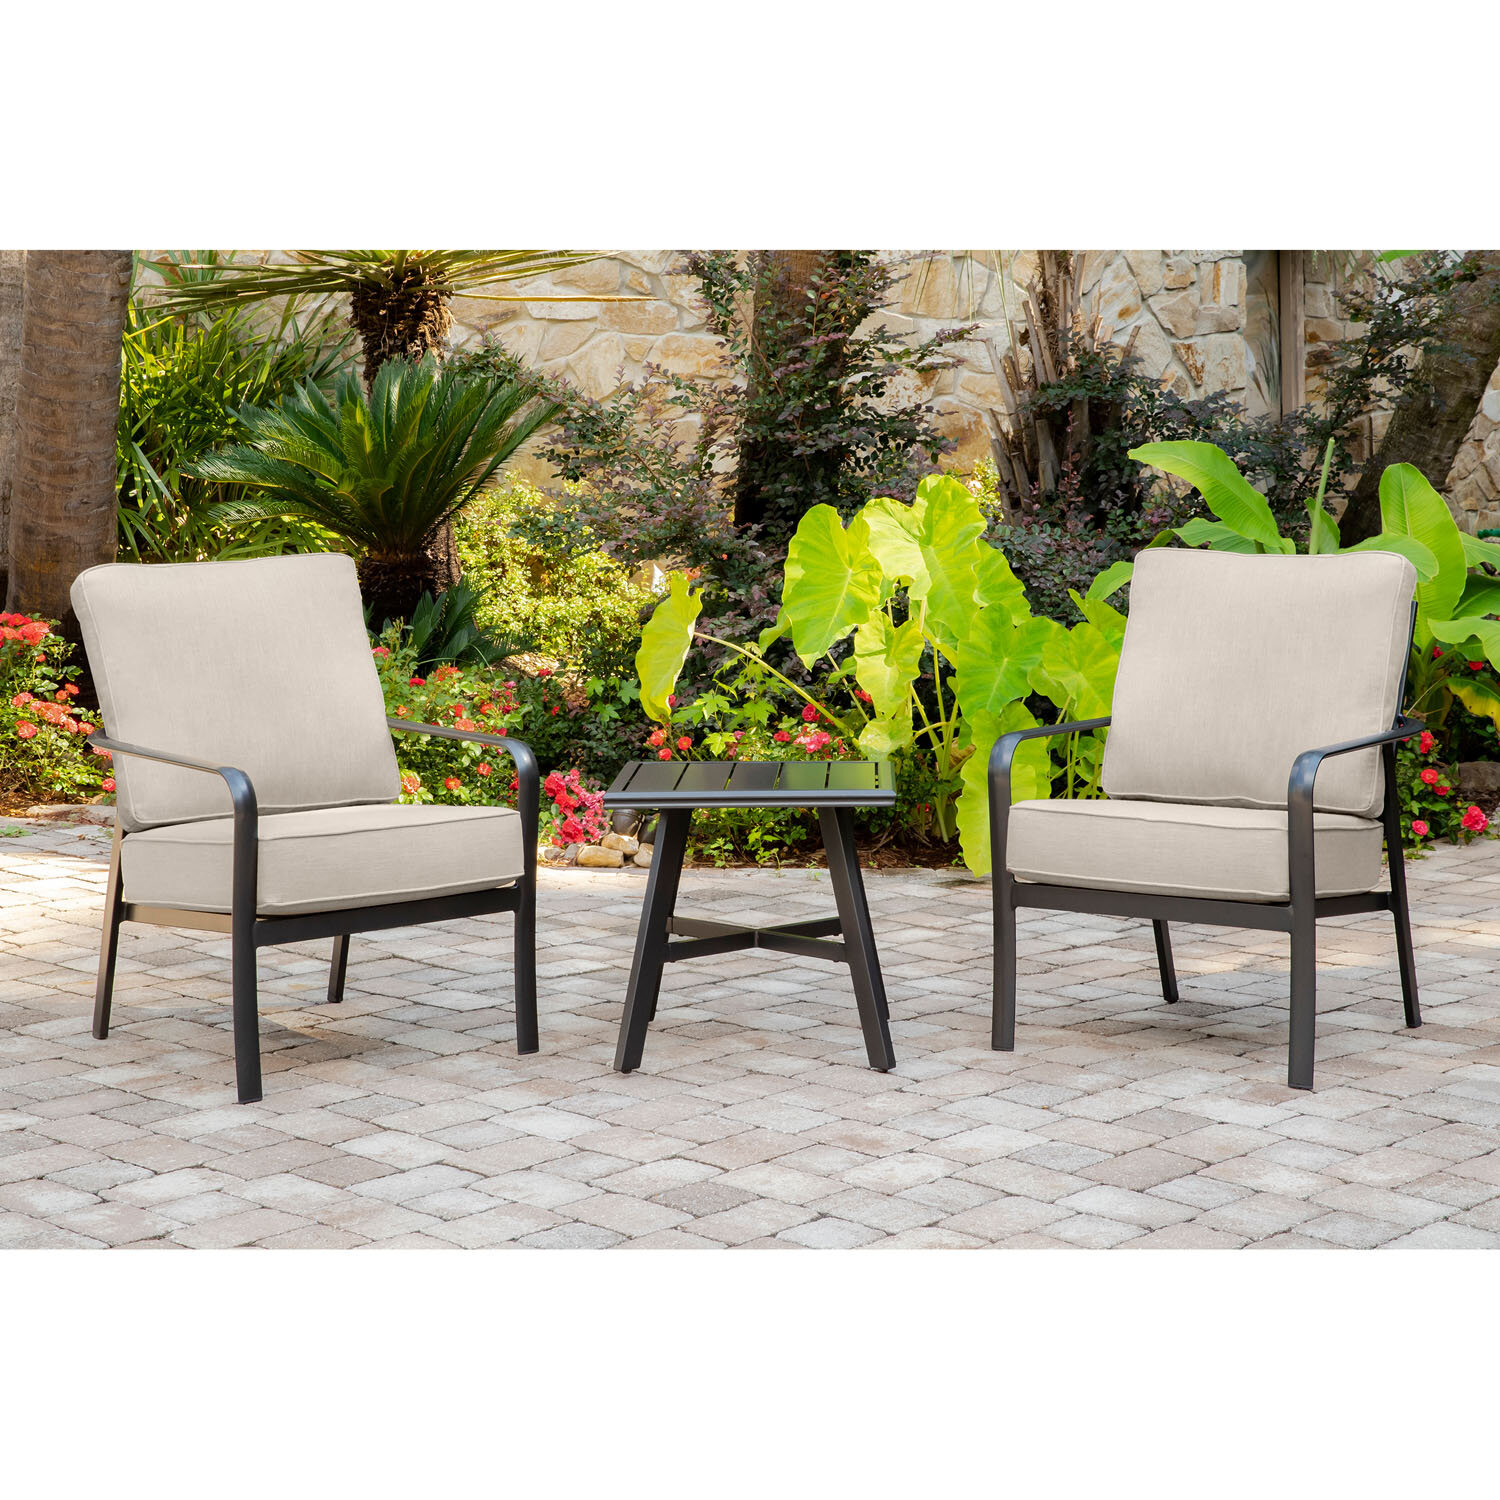 Gracie Oaks Colson 3-Piece Commercial-Grade Patio Seating Set with